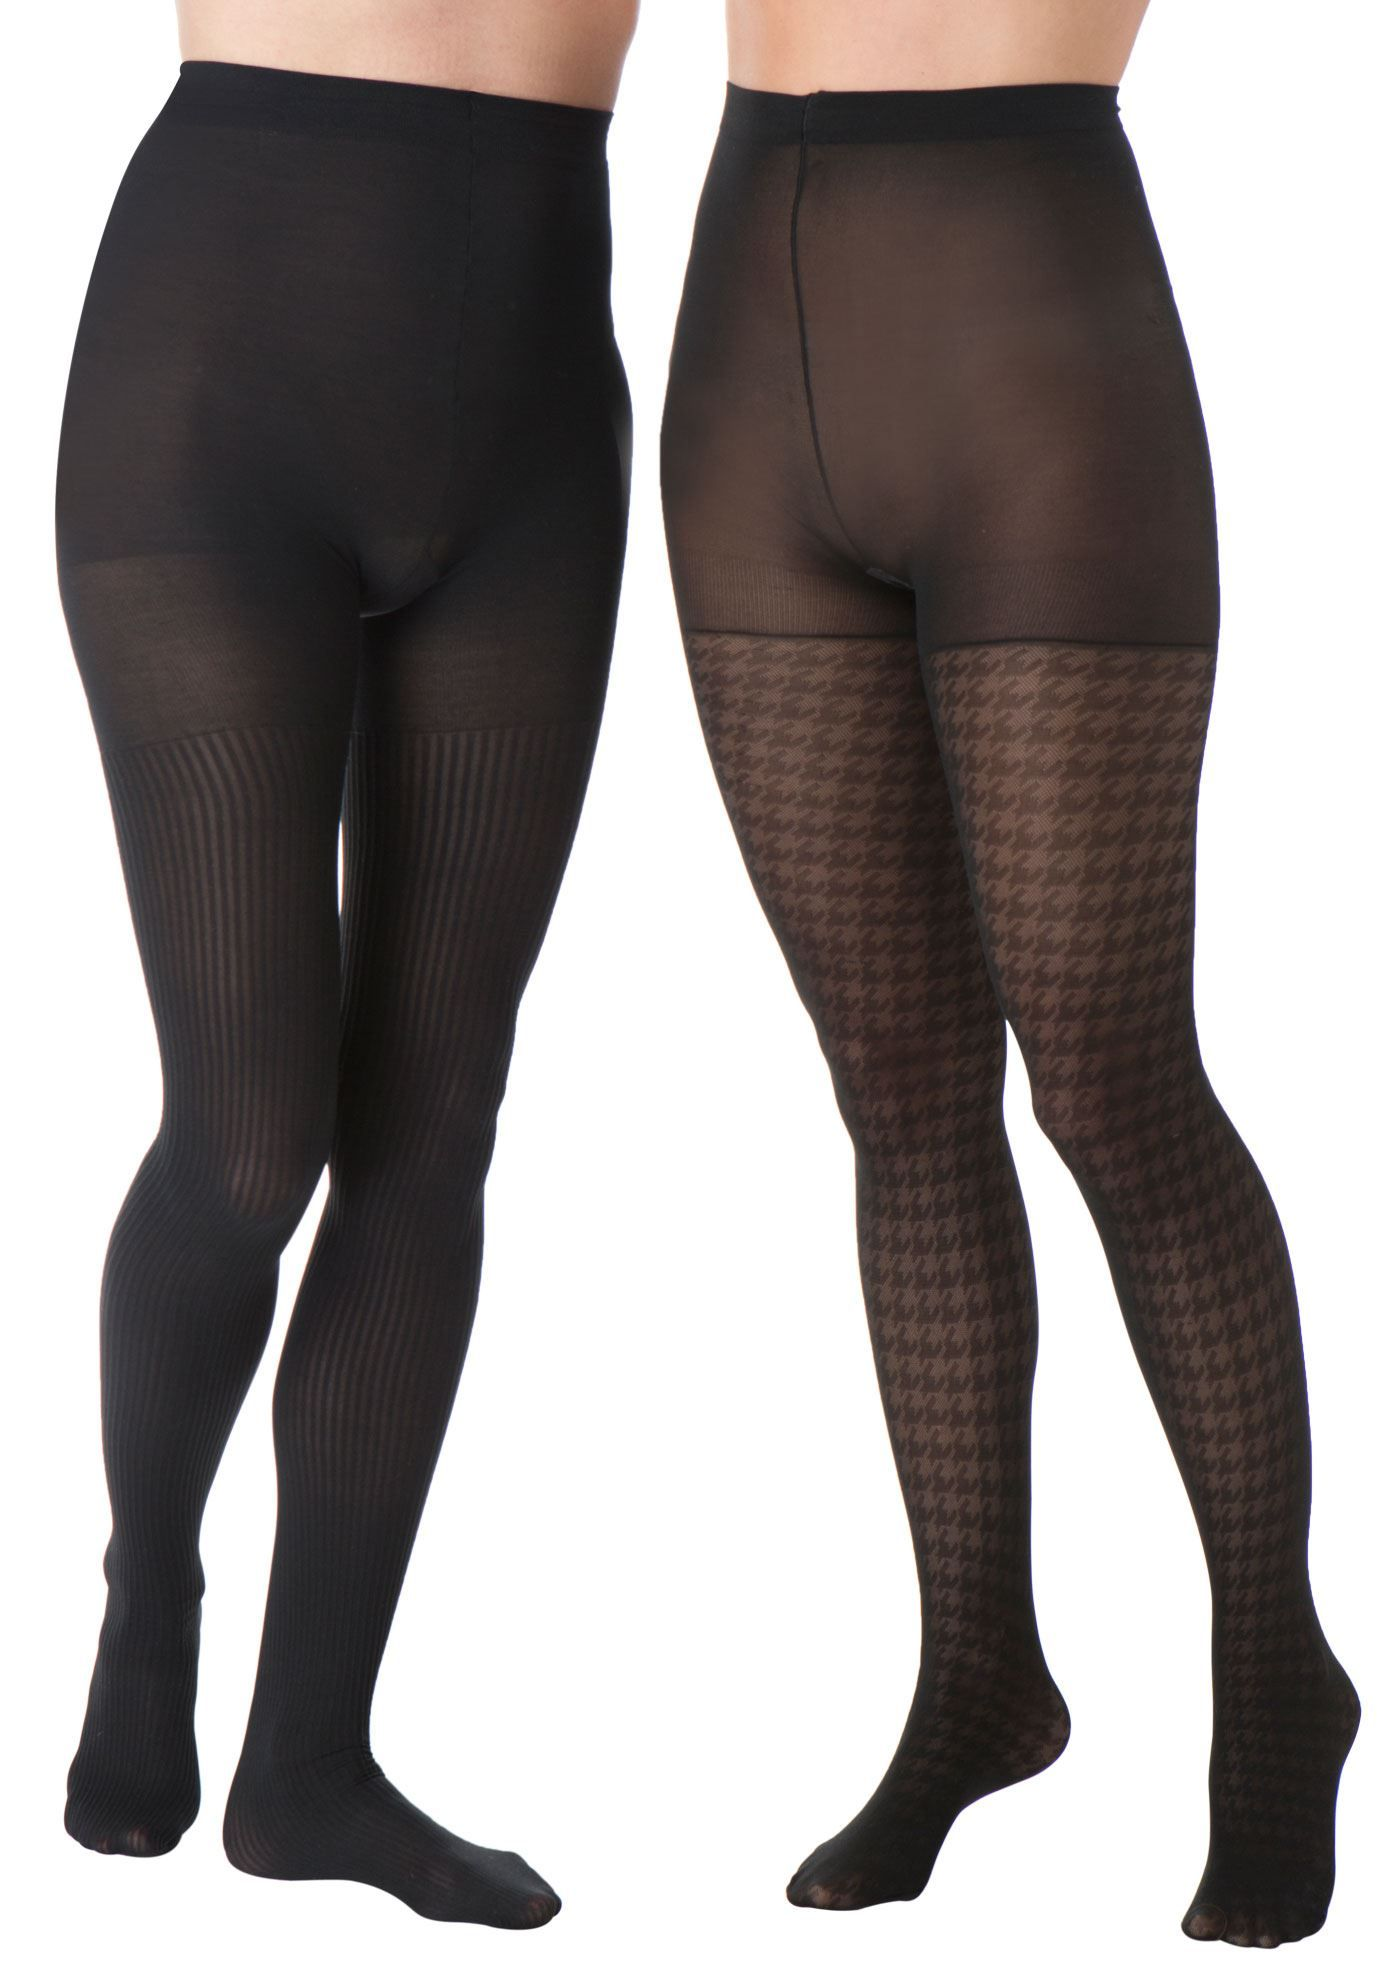 6566c0ce5c7 Print play takes center stage in this 2-pack of patterned plus size tights.  this alluring hosiery pack contains clever dotted tights and pretty floral  ...